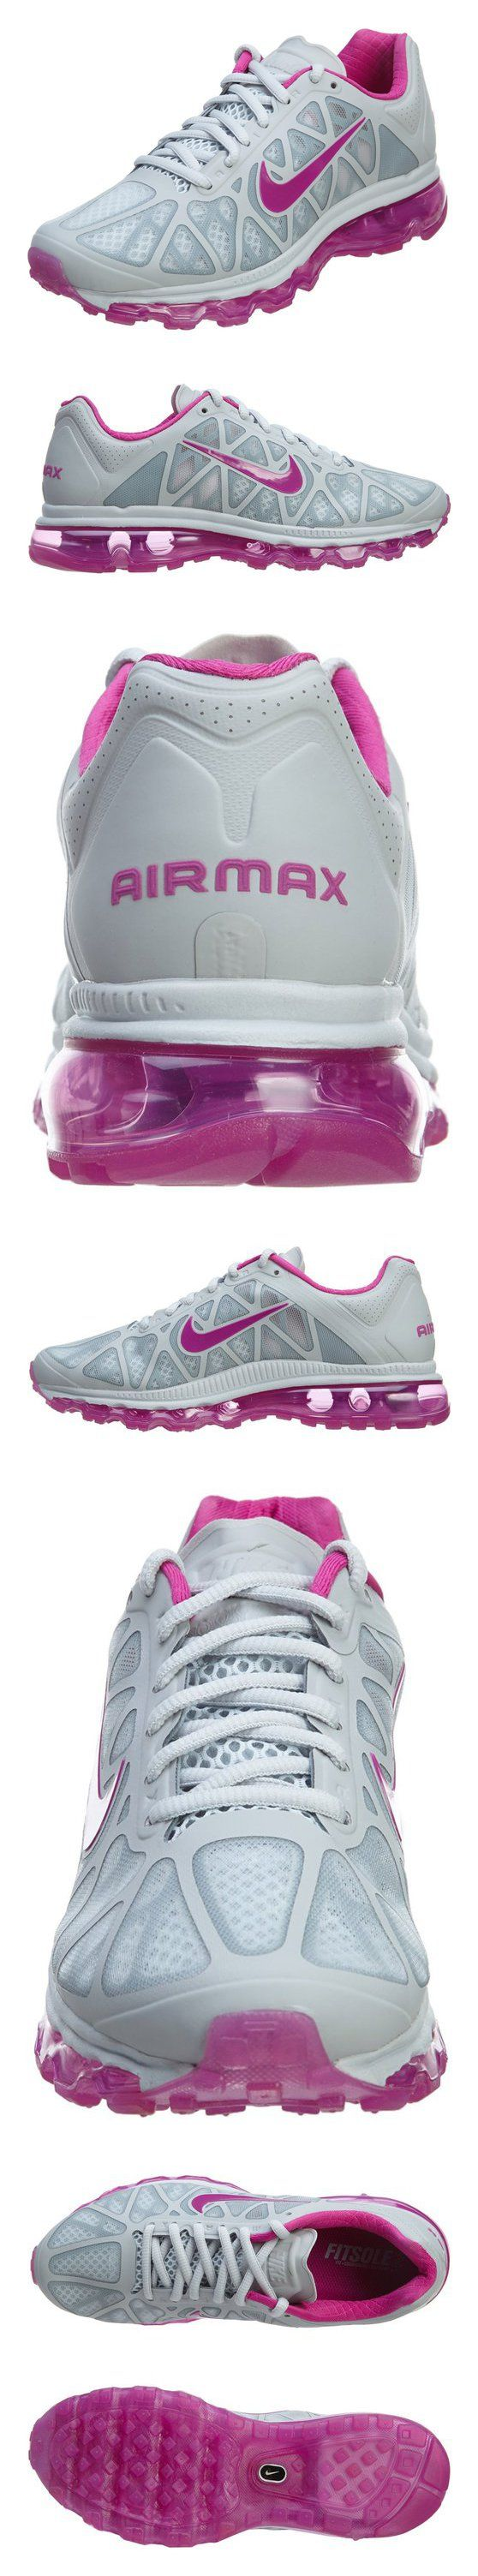 $186.46 - Nike Air Max 2011 Womens Style: 684531-004 Size: 7.5 M US #sports…